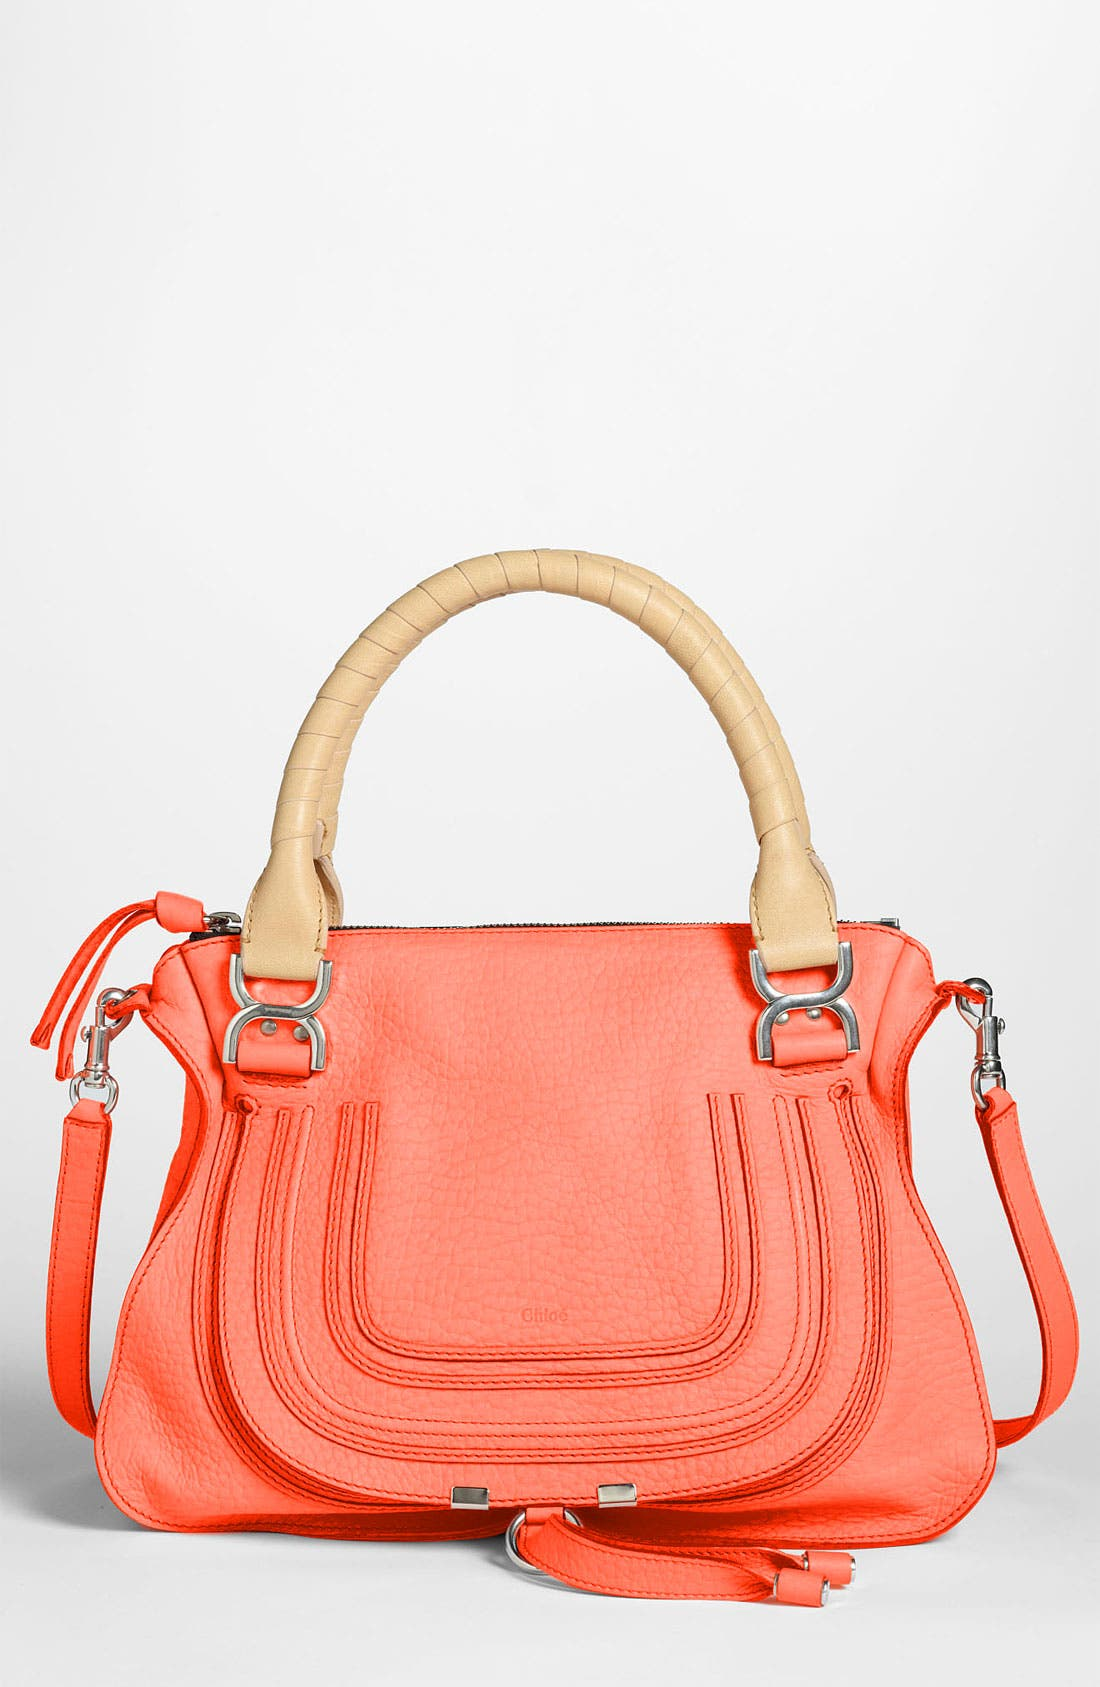 Main Image - Chloé 'Marcie - Small' Leather Satchel